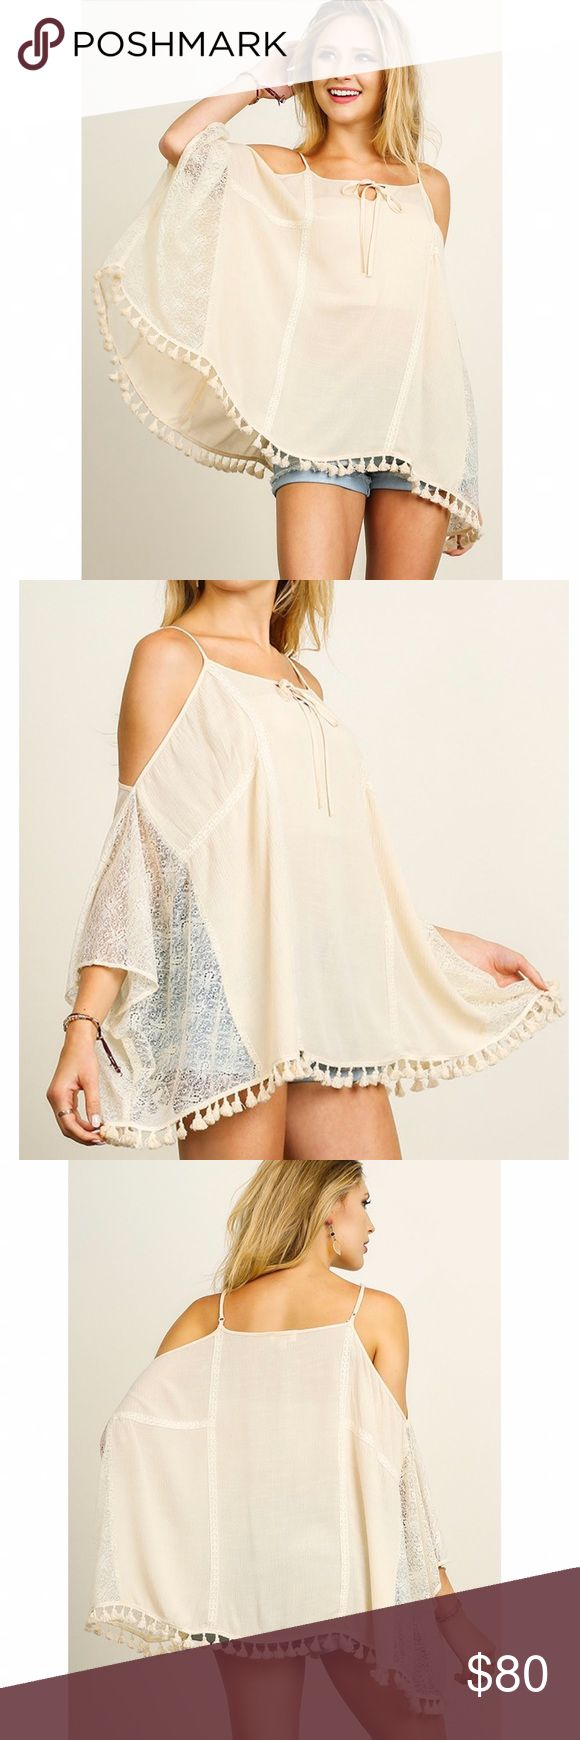 Open Shoulder Tassel Top NO TRADES | FIRM PRICE   Lace print batwing top. Loose fitting with tassel hem and open shoulders. Body is solid. Partially sheer. Model is 5'7 & wearing size small. THIS LISTING IS FOR CREAM. Available separately in black. JV Boutique  Tops